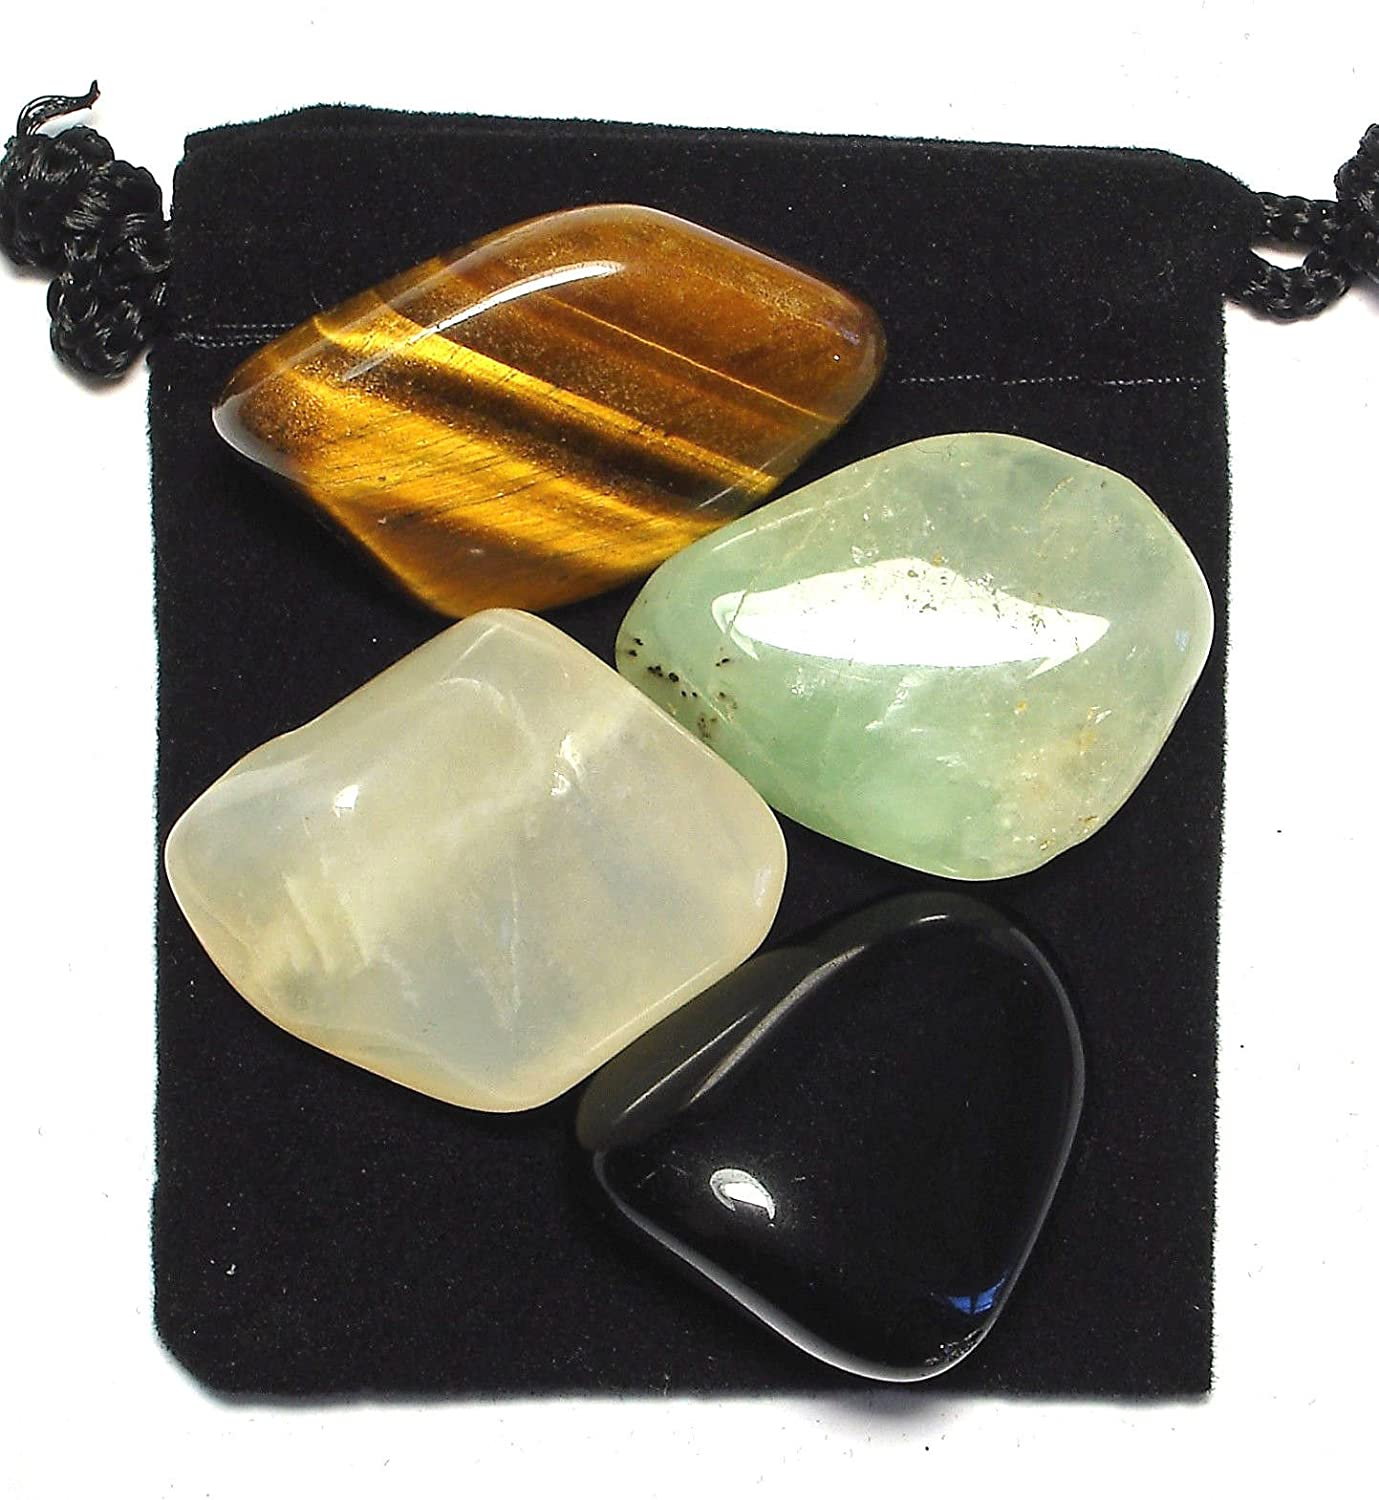 The Magic Is In You Manifestation (Law of Attraction) Tumbled Crystal Healing Set with Pouch & Description Card - Black Obsidian, Moonstone, Prehnite, and Tiger's Eye